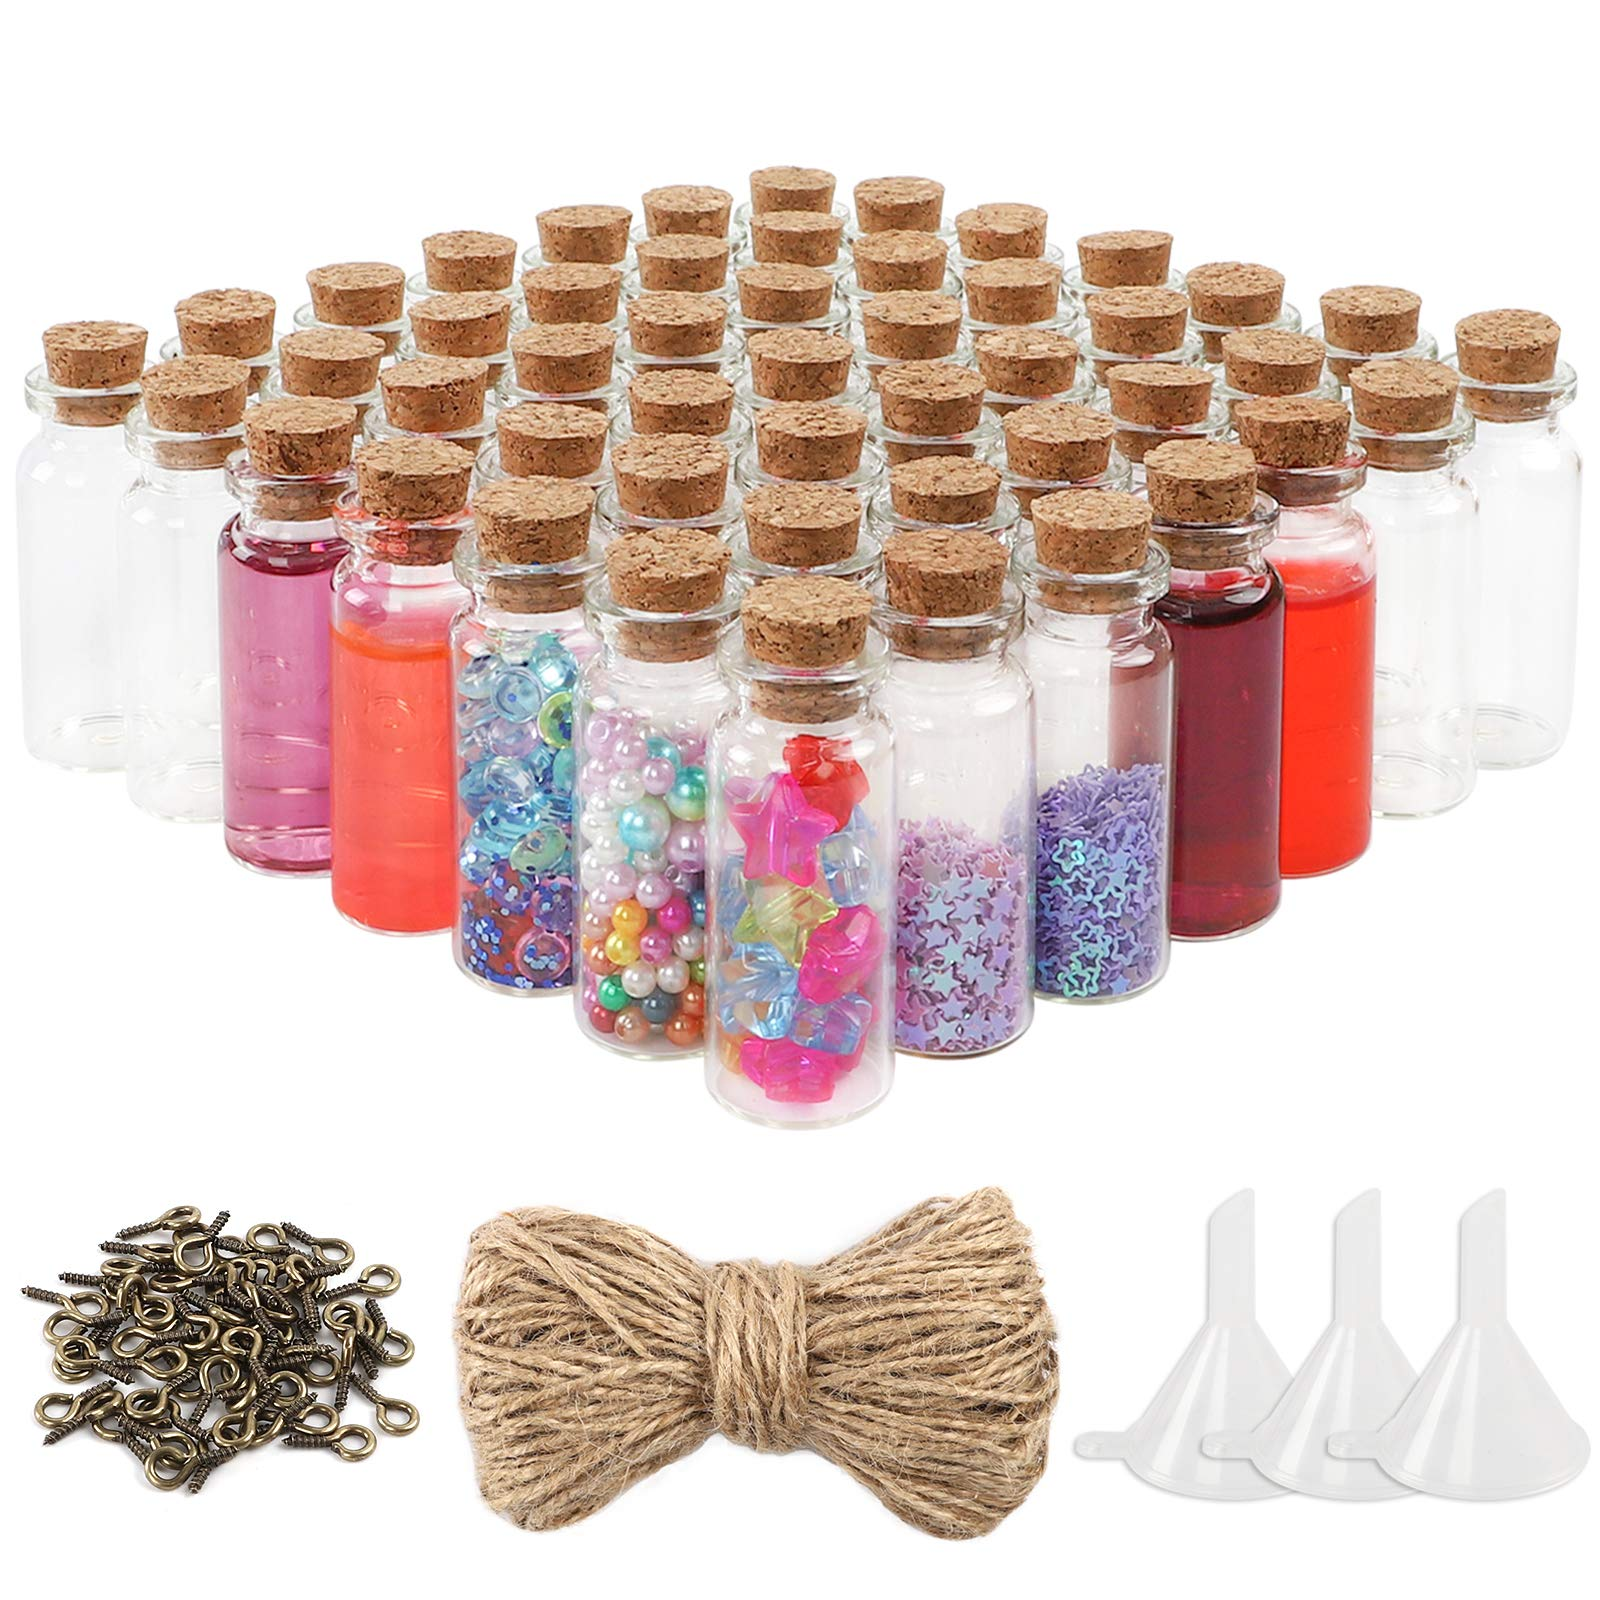 OUTUXED 60pcs 10ml Mini Glass Bottles with Cork Stoppers Wish Bottles, 60pcs Eye Screws, 30 Meters Twine and 3pcs Funnel